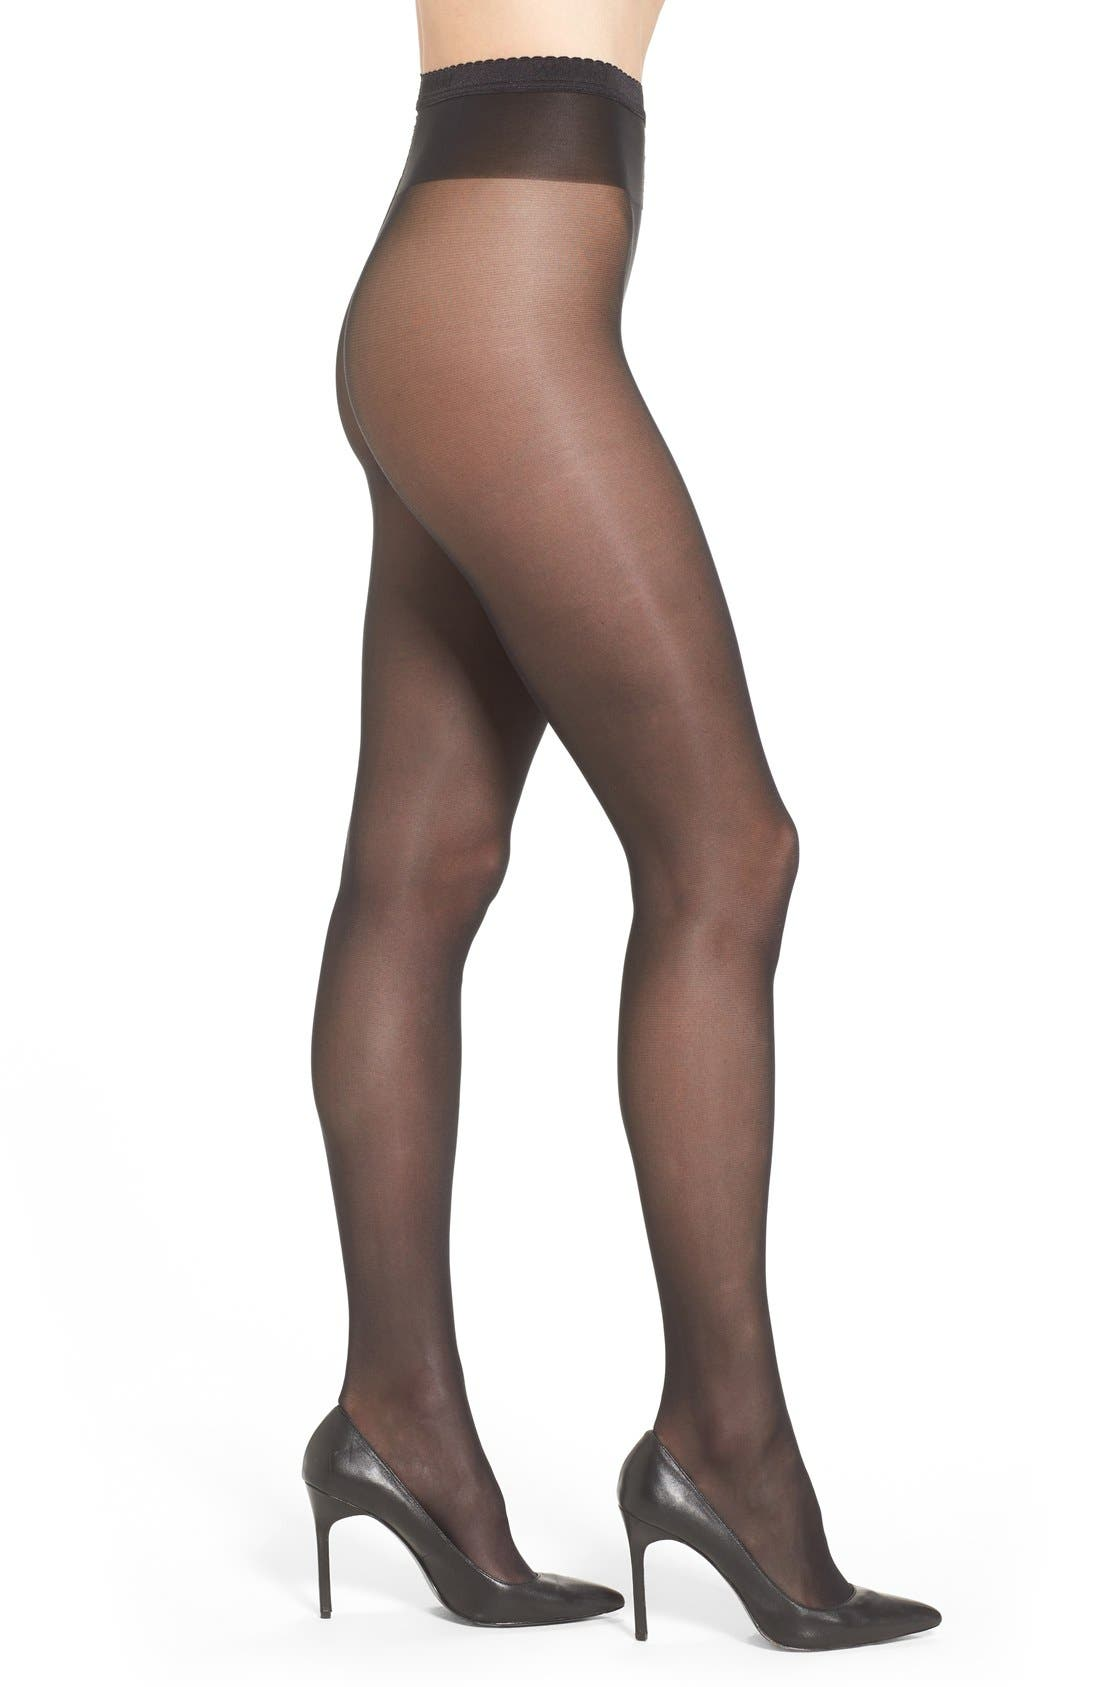 'Neon 40' Pantyhose,                         Main,                         color, BLACK